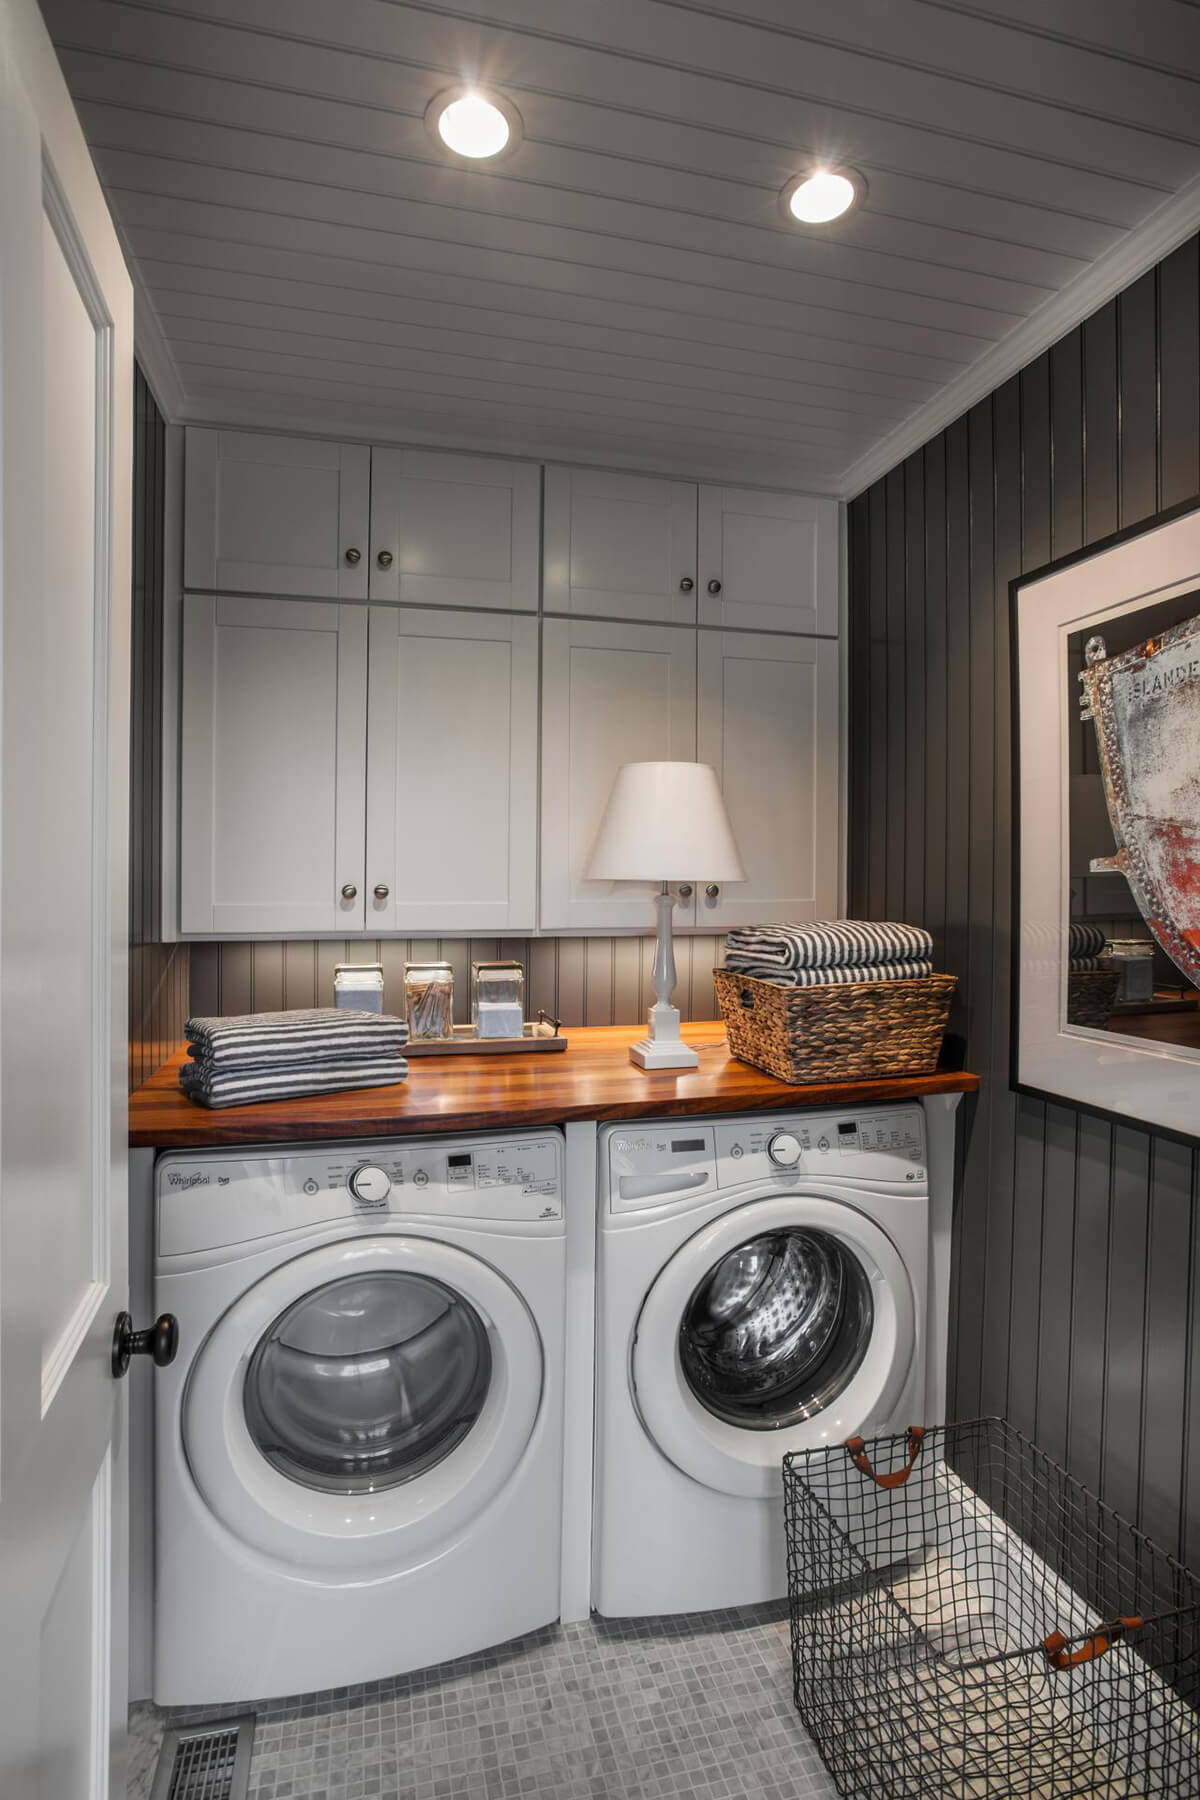 28 Best Small Laundry Room Design Ideas for 2020 on Laundry Decorating Ideas  id=21566